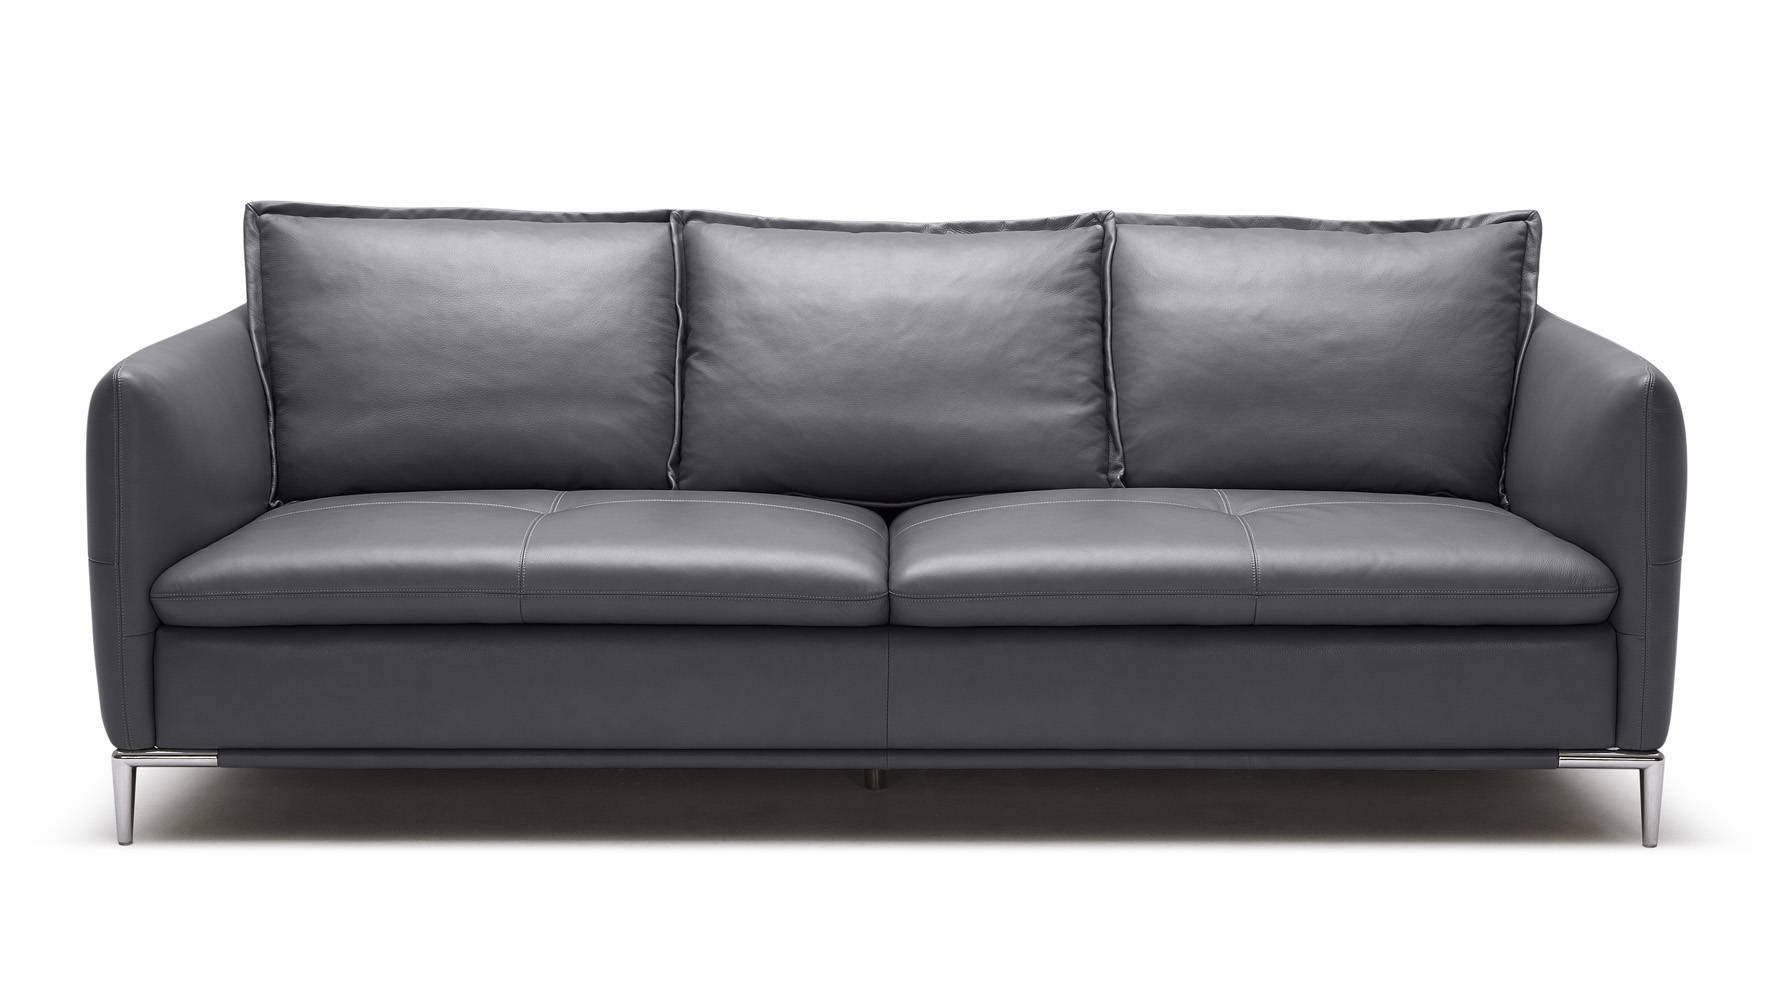 Grey Bristol Leather Sofa Set With Loveseat And Chair | Zuri Furniture for Bristol Sofas (Image 10 of 30)